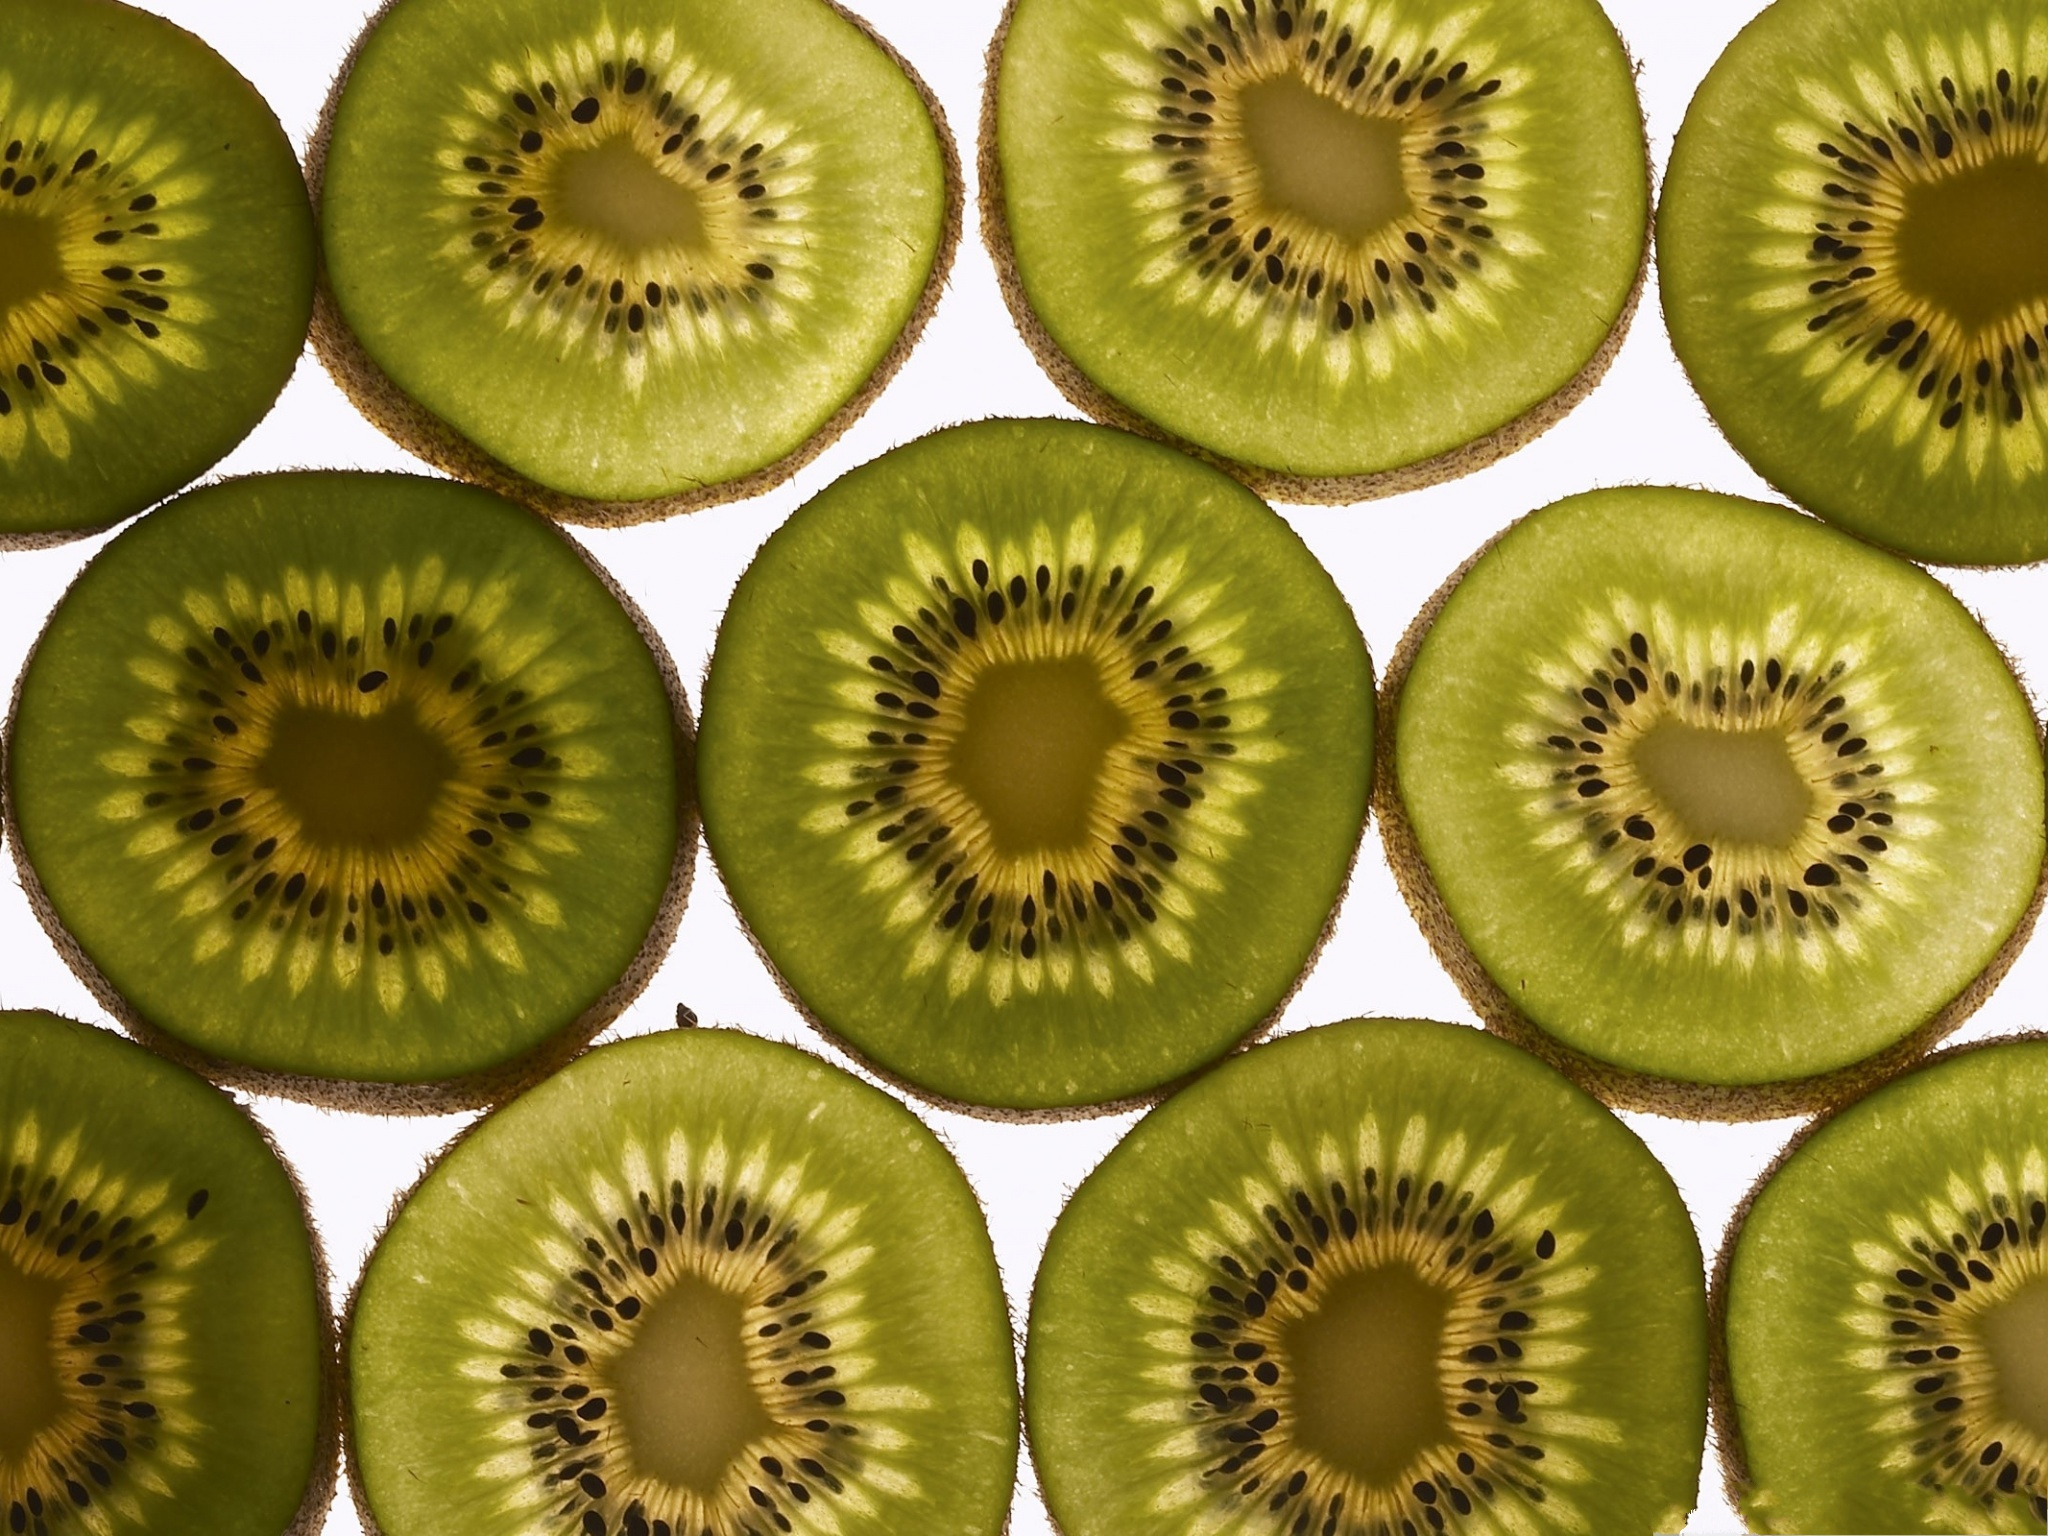 click to free download the wallpaper--Free Fruit Wallpaper, Kiwis Cut into Half, Want a Bite? 2048X1536 free wallpaper download